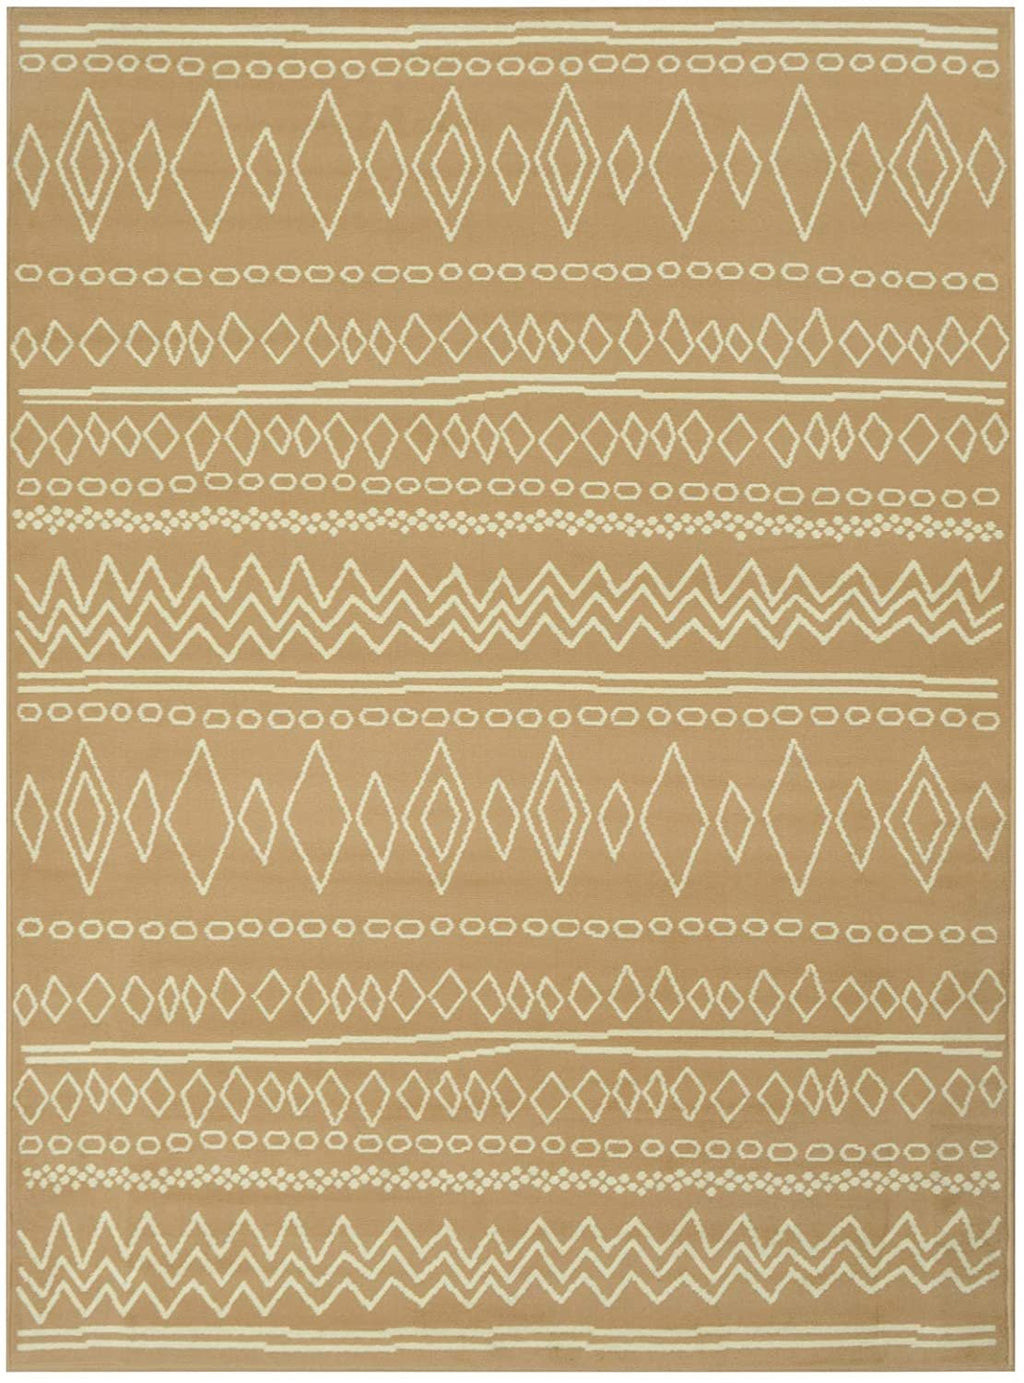 Southwestern Rug for Living Room Antiqued Trellis Camel and White Area Rug Boho Décor Rugs for Bedroom